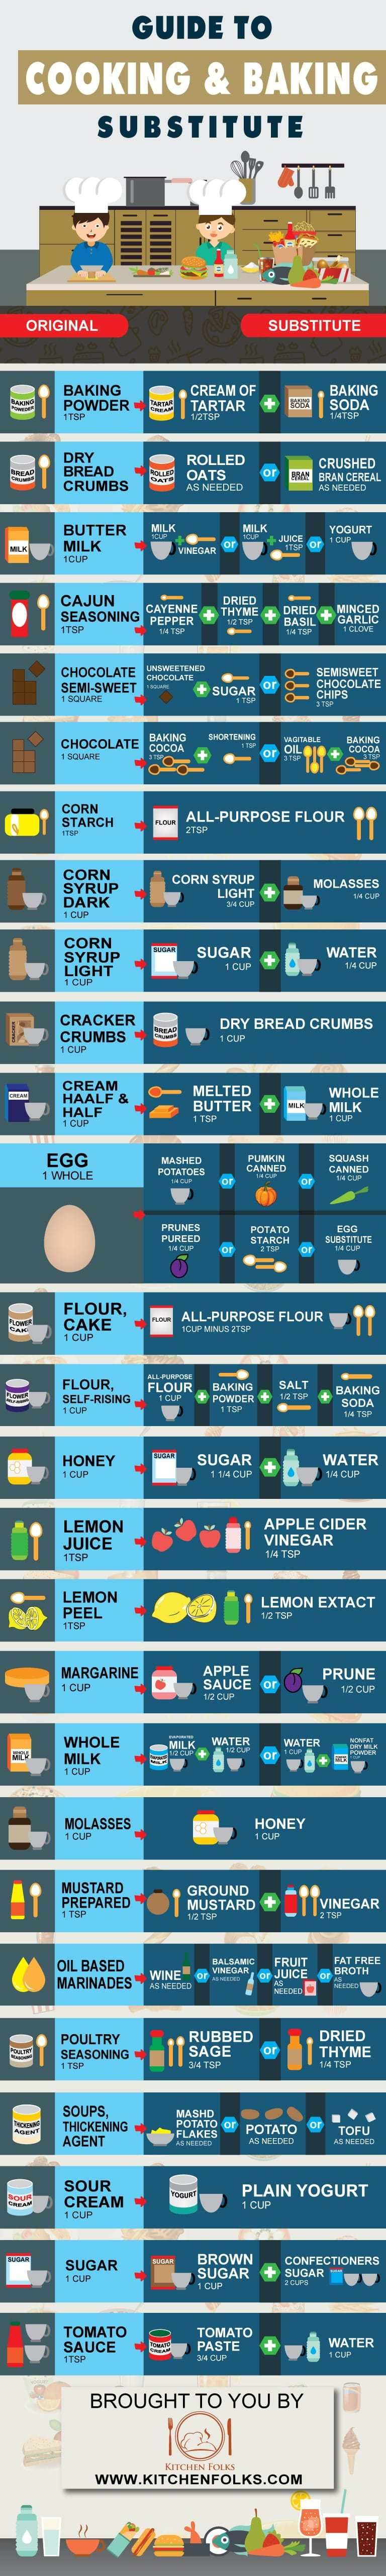 Guide to Cooking & Baking Substitute [Infographic]   Cuisine, Food ...